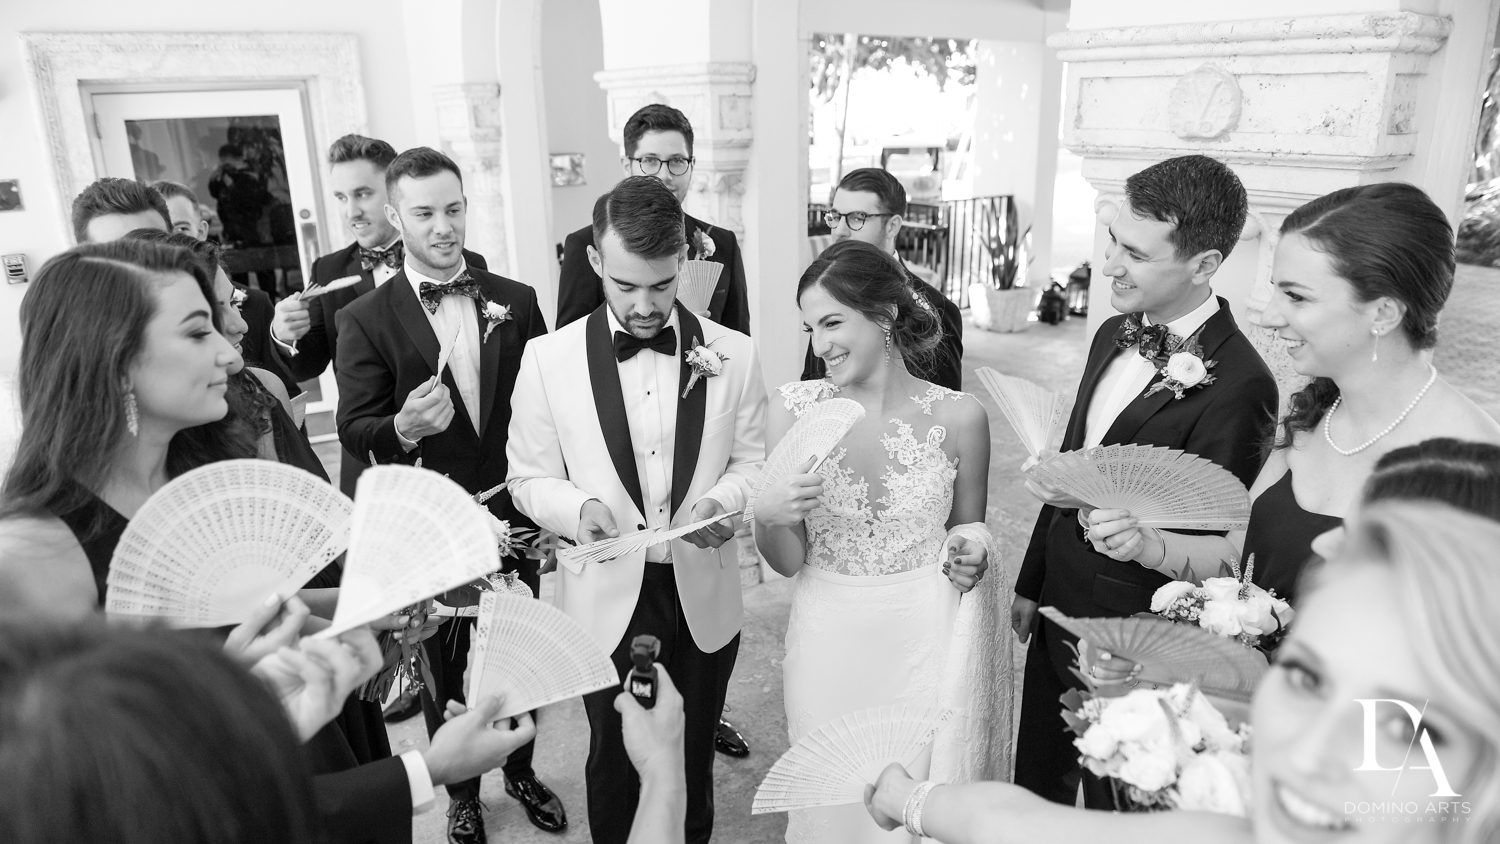 kettubah signing at Tropical Garden Wedding at Fisher Island Miami by Domino Arts Photography